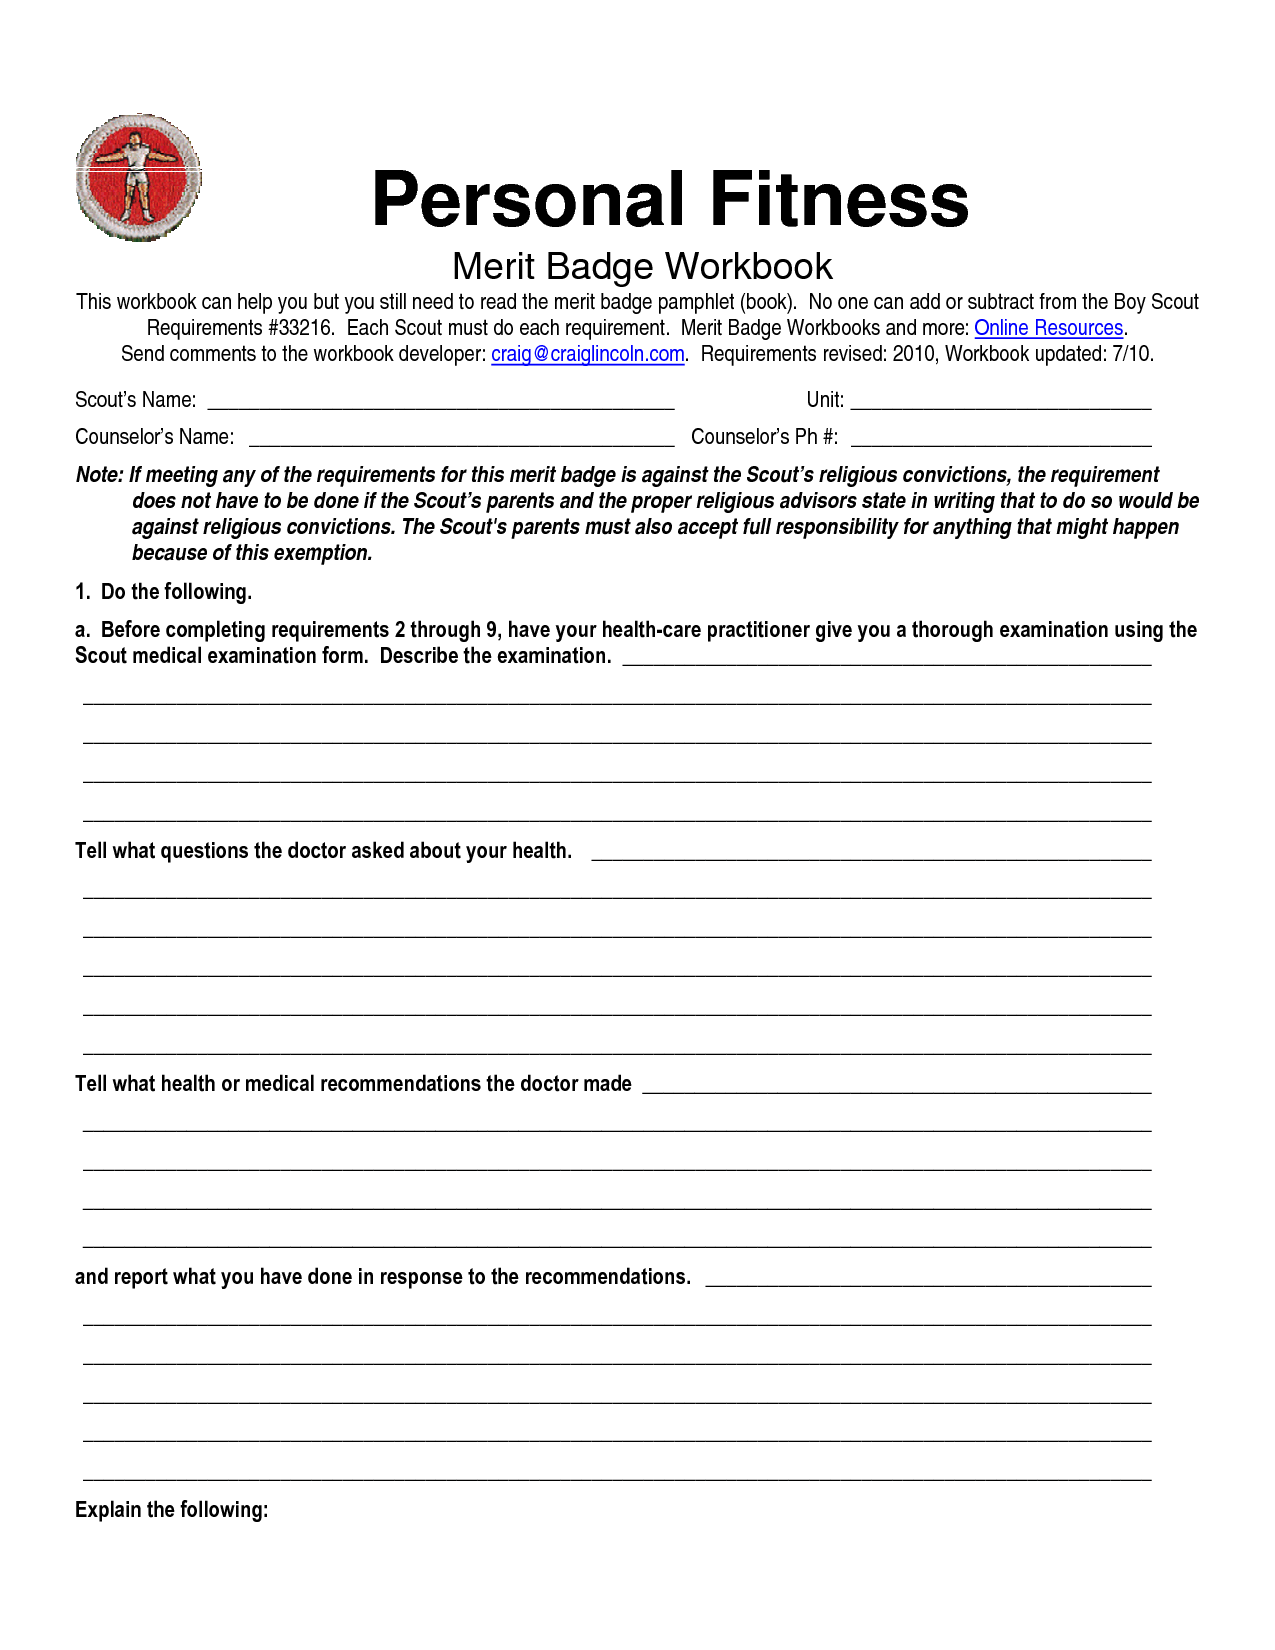 10 Best Images Of Family Life Merit Badge Worksheet